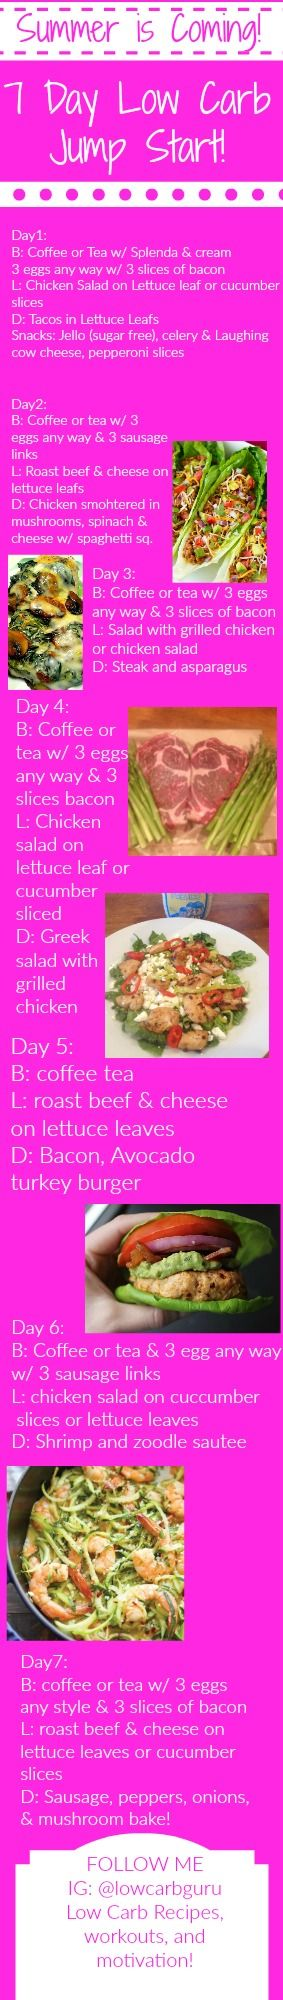 Low Carb Meal Plan Go to www.thelowcarbguru.com to get your monthly menu plans and recipes!